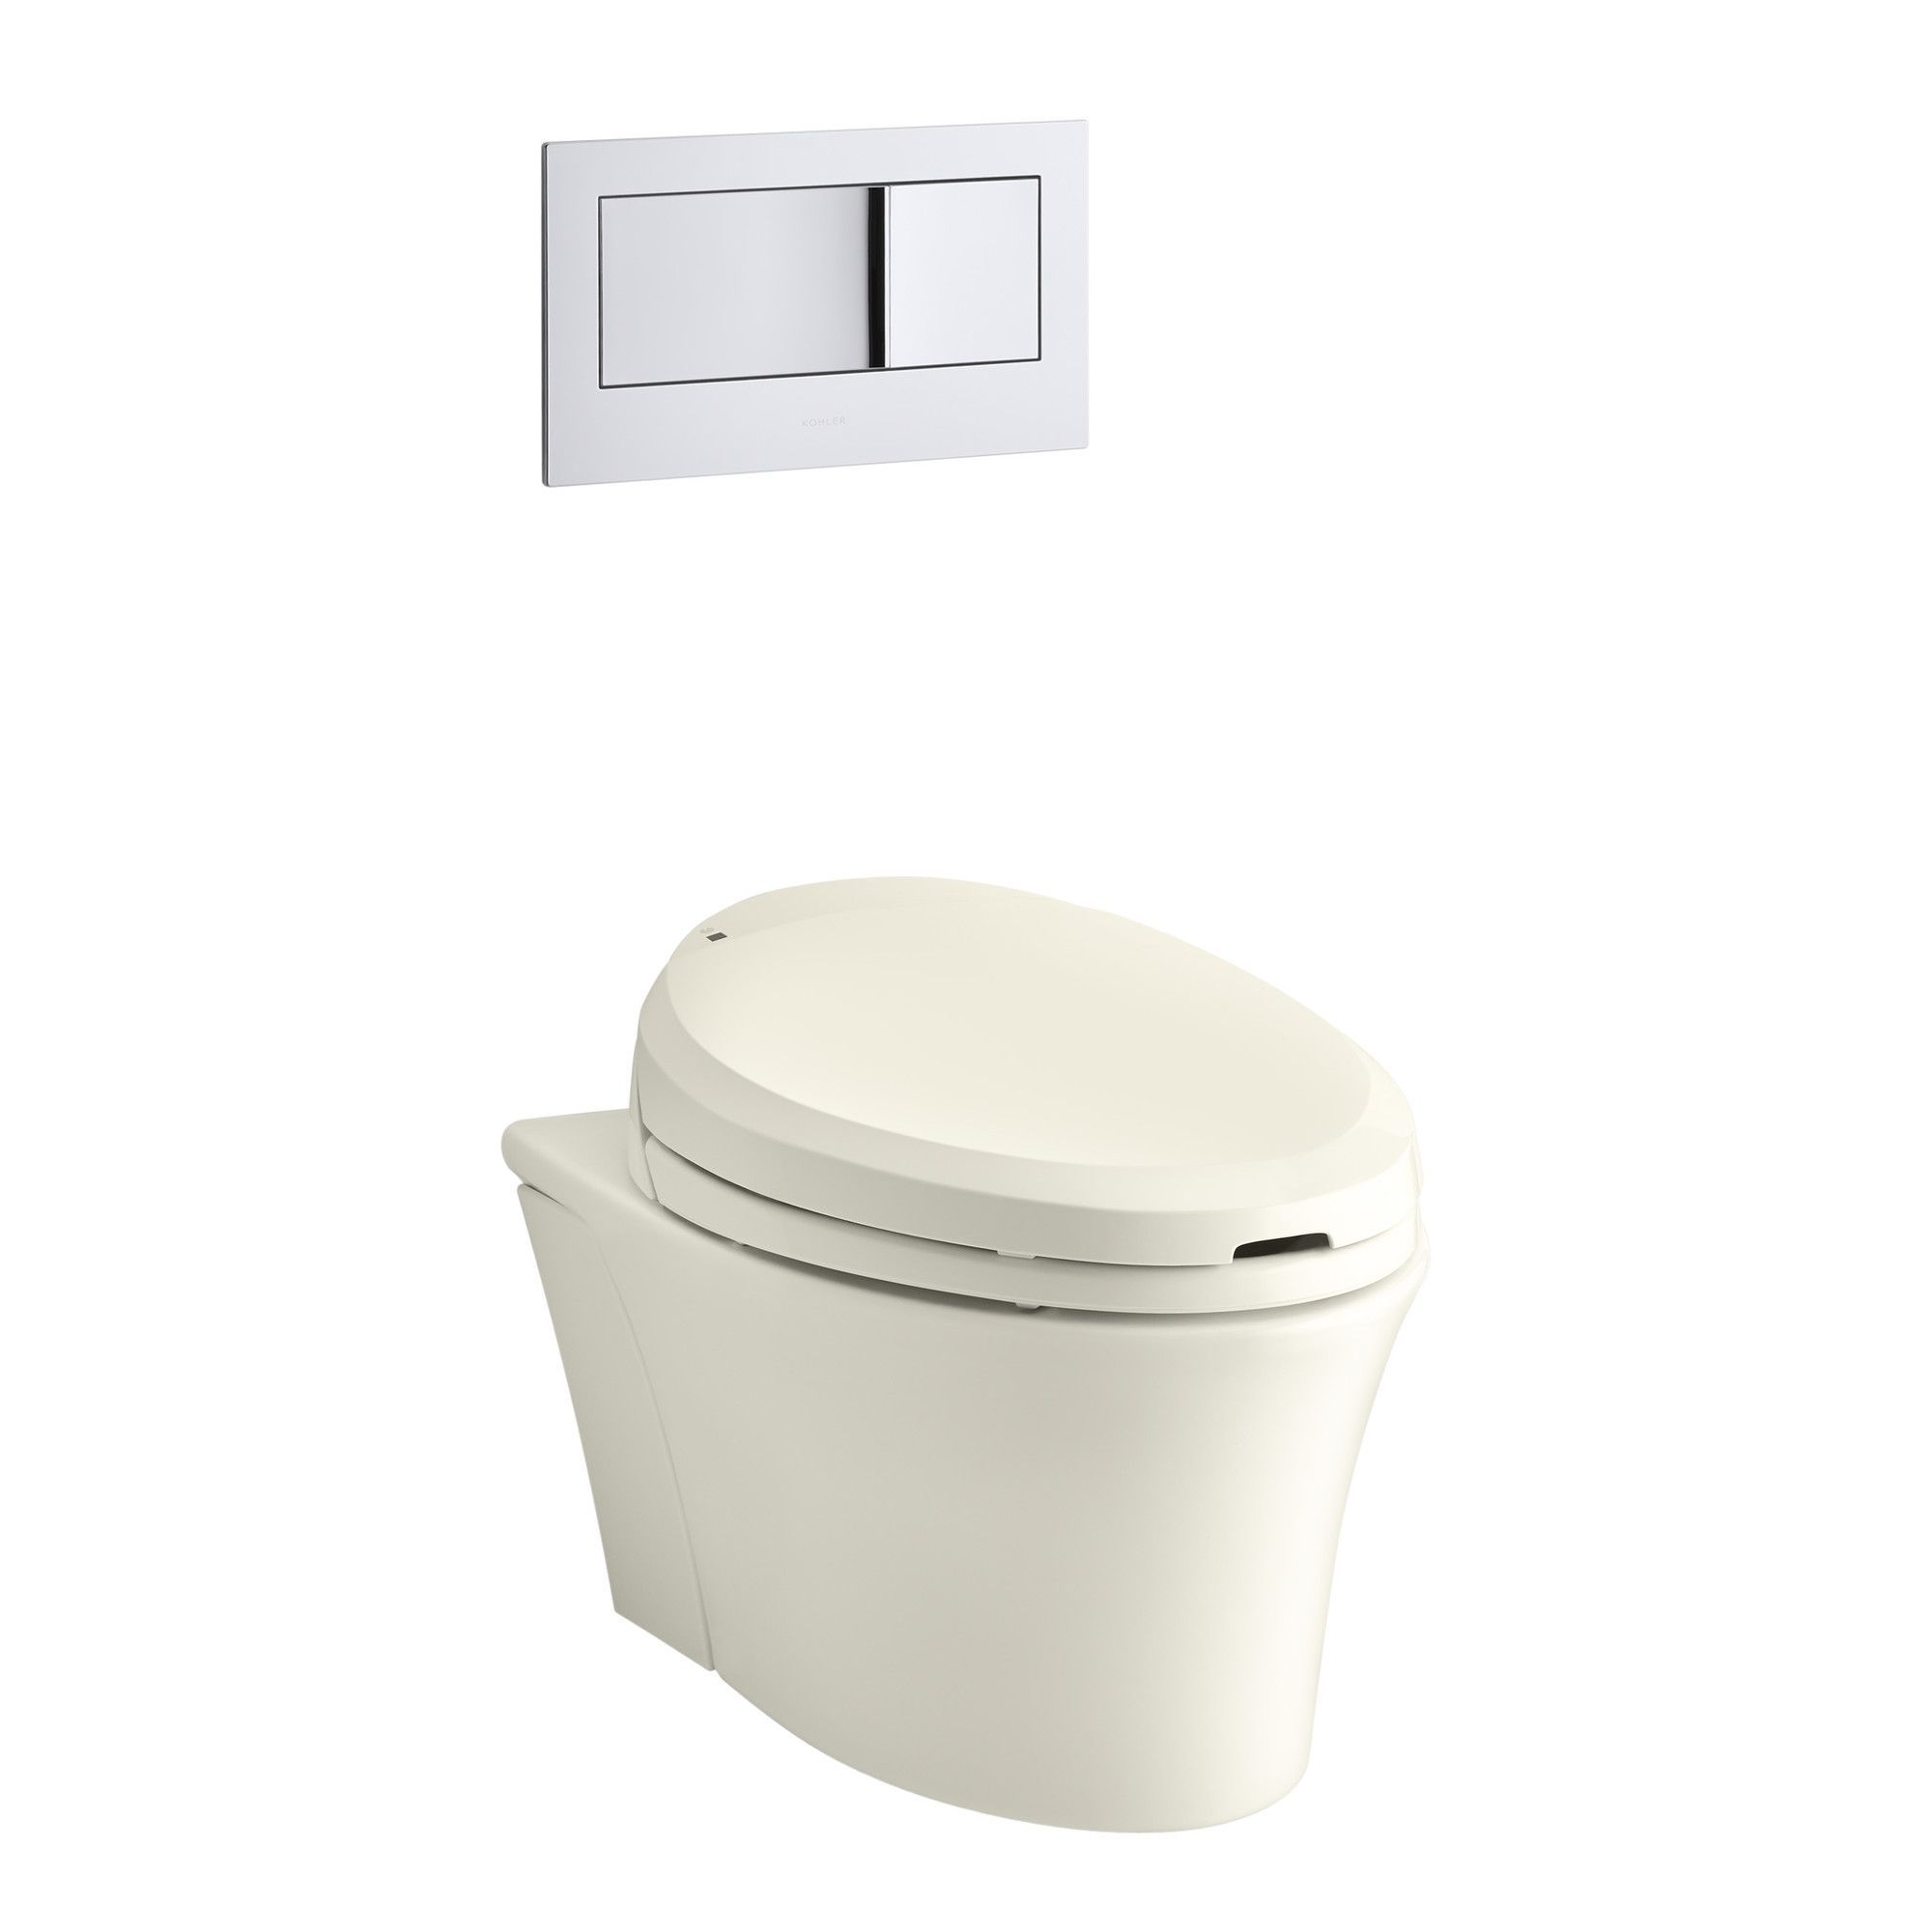 Veil One Piece Elongated Dual Flush Wall Hung Toilet With C3 Bidet